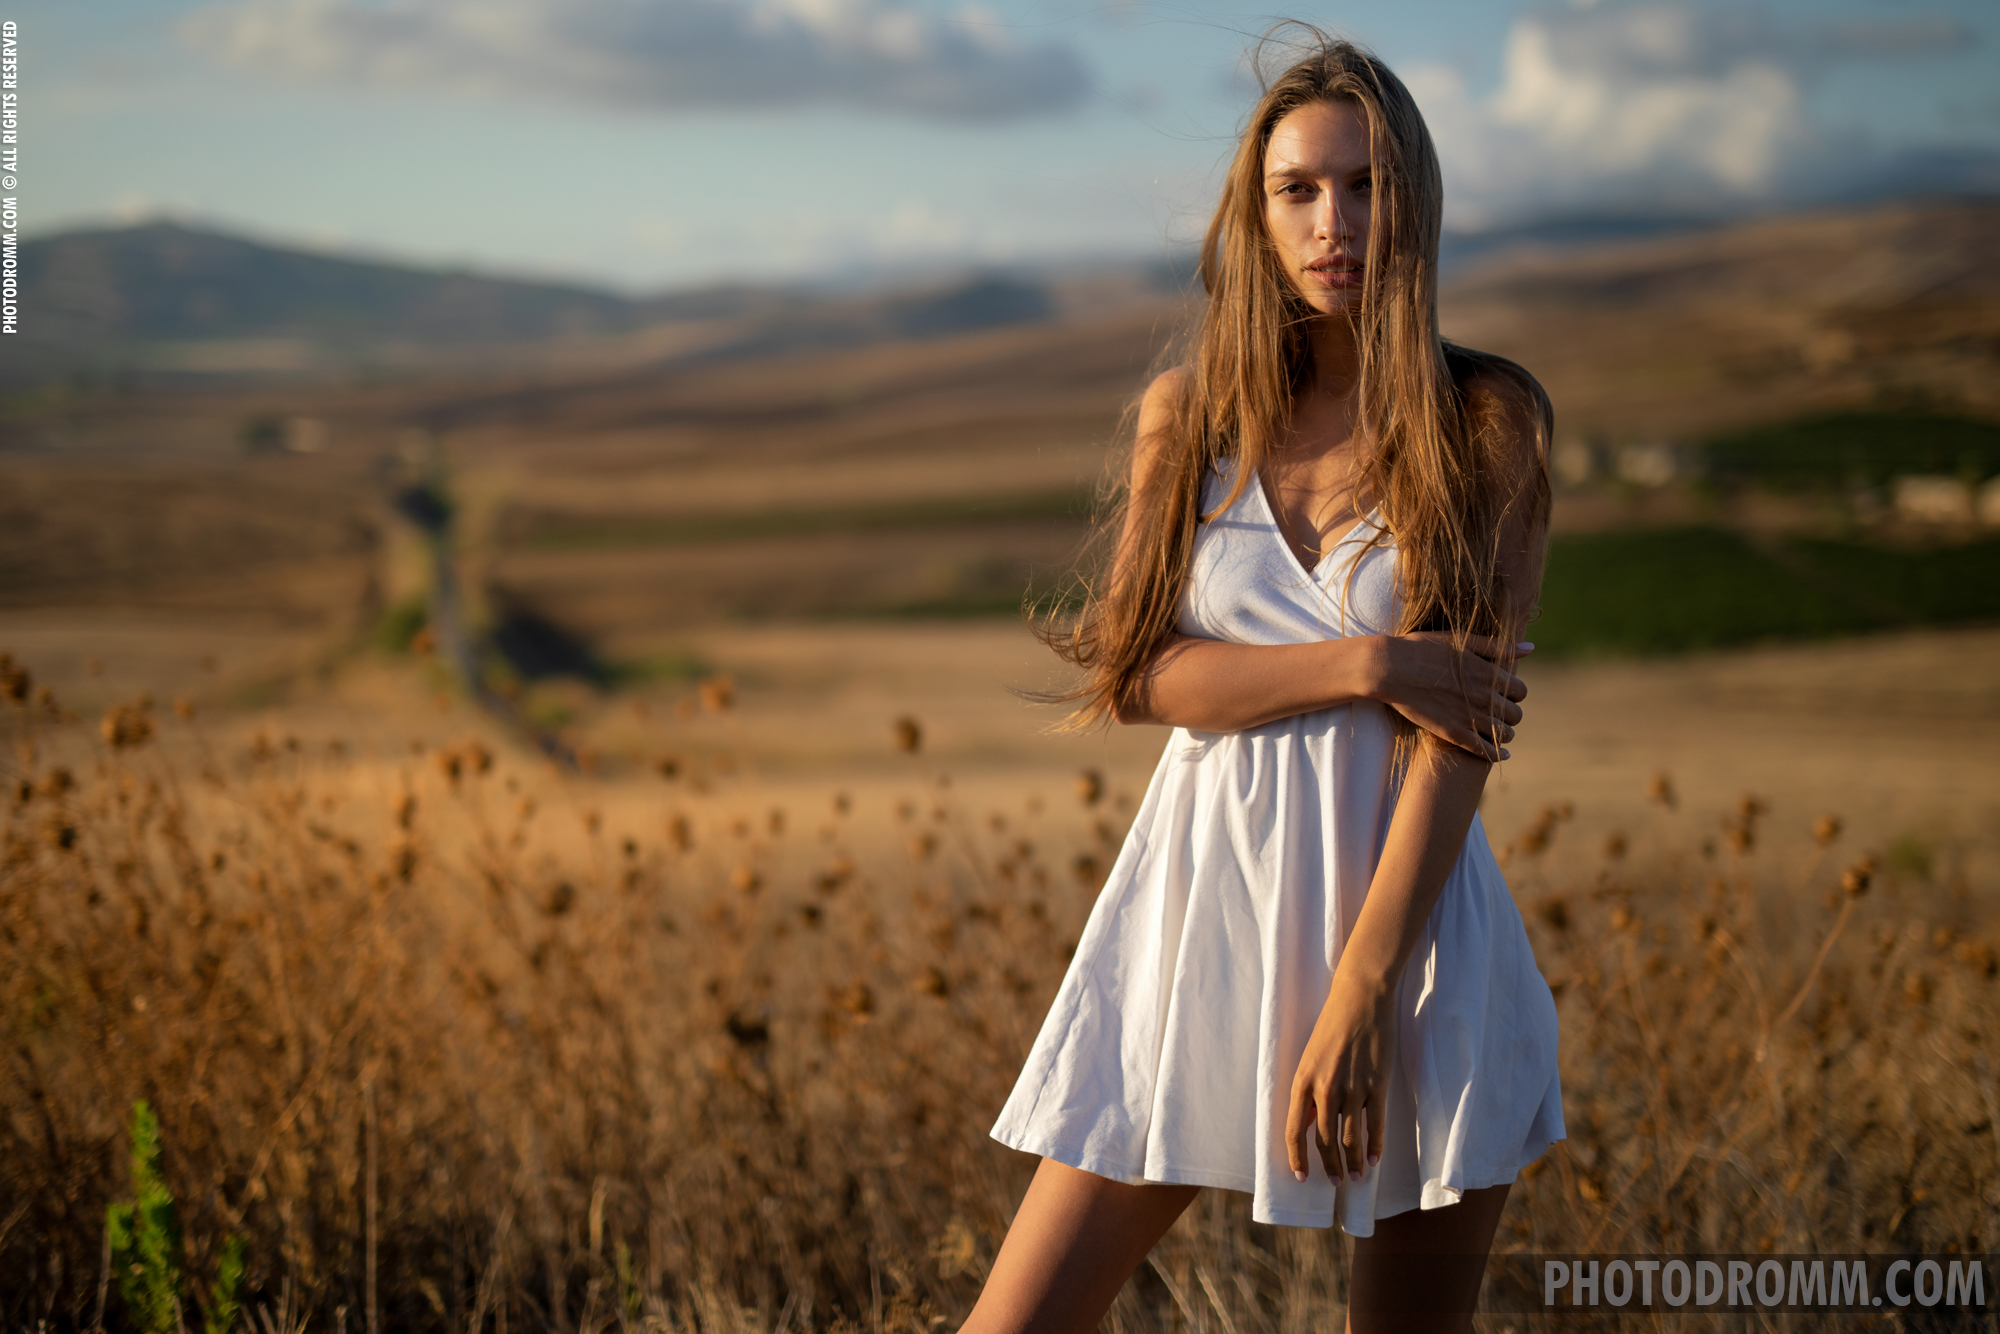 Alina Big Tits in White Flowy Dress for Photodromm